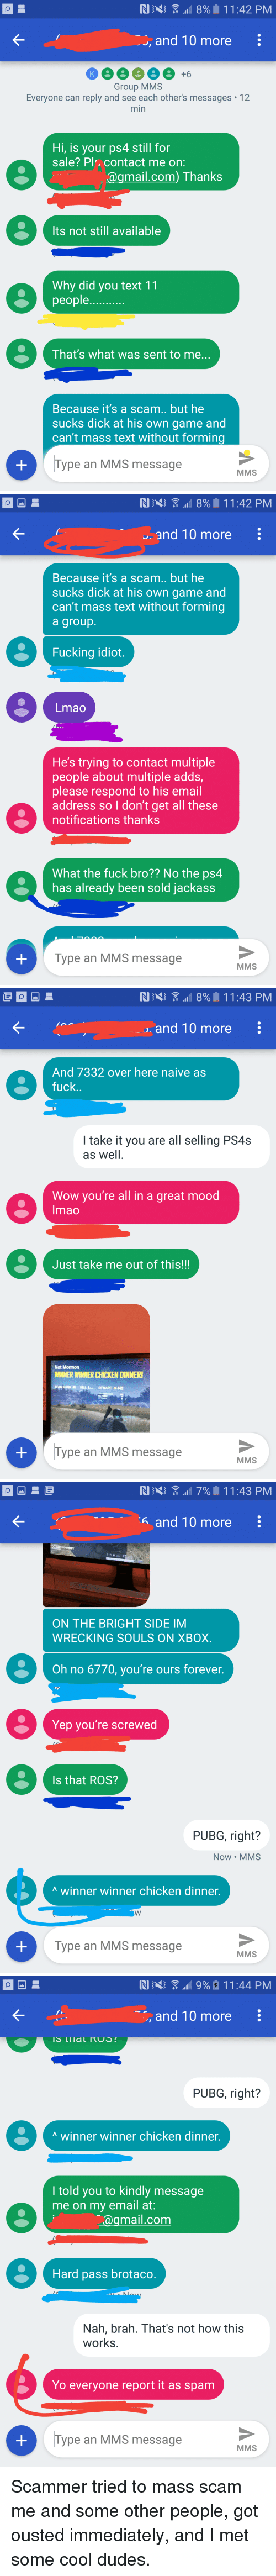 Facepalm, Fucking, and Lmao: , and T0 more  Group MMS  Everyone can reply and see each other's messages 12  min  Hi, is your ps4 still for  sale? Pl, contact me on:  @gmail.com) Thanks  Its not still available  Why did you text 11  people  That's what was sent to me.  Because it's a scam.. but he  sucks dick at his own game and  can't mass text without forming  Type an MMS message  MMS   . and 10 more  Because it's a scam.. but he  sucks dick at his own game and  can't mass text without forming  a group  Fucking idiot.  Lmao  He's trying to contact multiple  people about multiple adds  please respond to his email  address so I don't get all these  notifications thanks  What the fuck bro?? No the ps4  has already been sold jackass  Type an MMS message  MMS   . and 10 more  And 7332 over here naive as  fuck  I take it you are all selling PS4s  as well  Wow you're all in a great mood  Imao  Just take me out of this!!!  Not Mormon  WINNER WINNER CHICKEN DINNERI  뾔  Type an MMS message  MMS   6 and 10 more  ON THE BRIGHT SIDE IM  WRECKING SOULS ON XBOX.  Oh no 6770, you're ours forever  Yep you're screwed  Is that ROS?  PUBG, right?  Now MMS  A winner winner chicken dinner.  Type an MMS message  MMS   , and T0 more  PUBG, right?  A winner winner chicken dinner.  l told you to kindly message  me on my email at:  agmail.com  Hard pass brotaco  Nah, brah. That's not how this  works.  Yo everyone report it as spam  Type an MMS message  MMS Scammer tried to mass scam me and some other people, got ousted immediately, and I met some cool dudes.